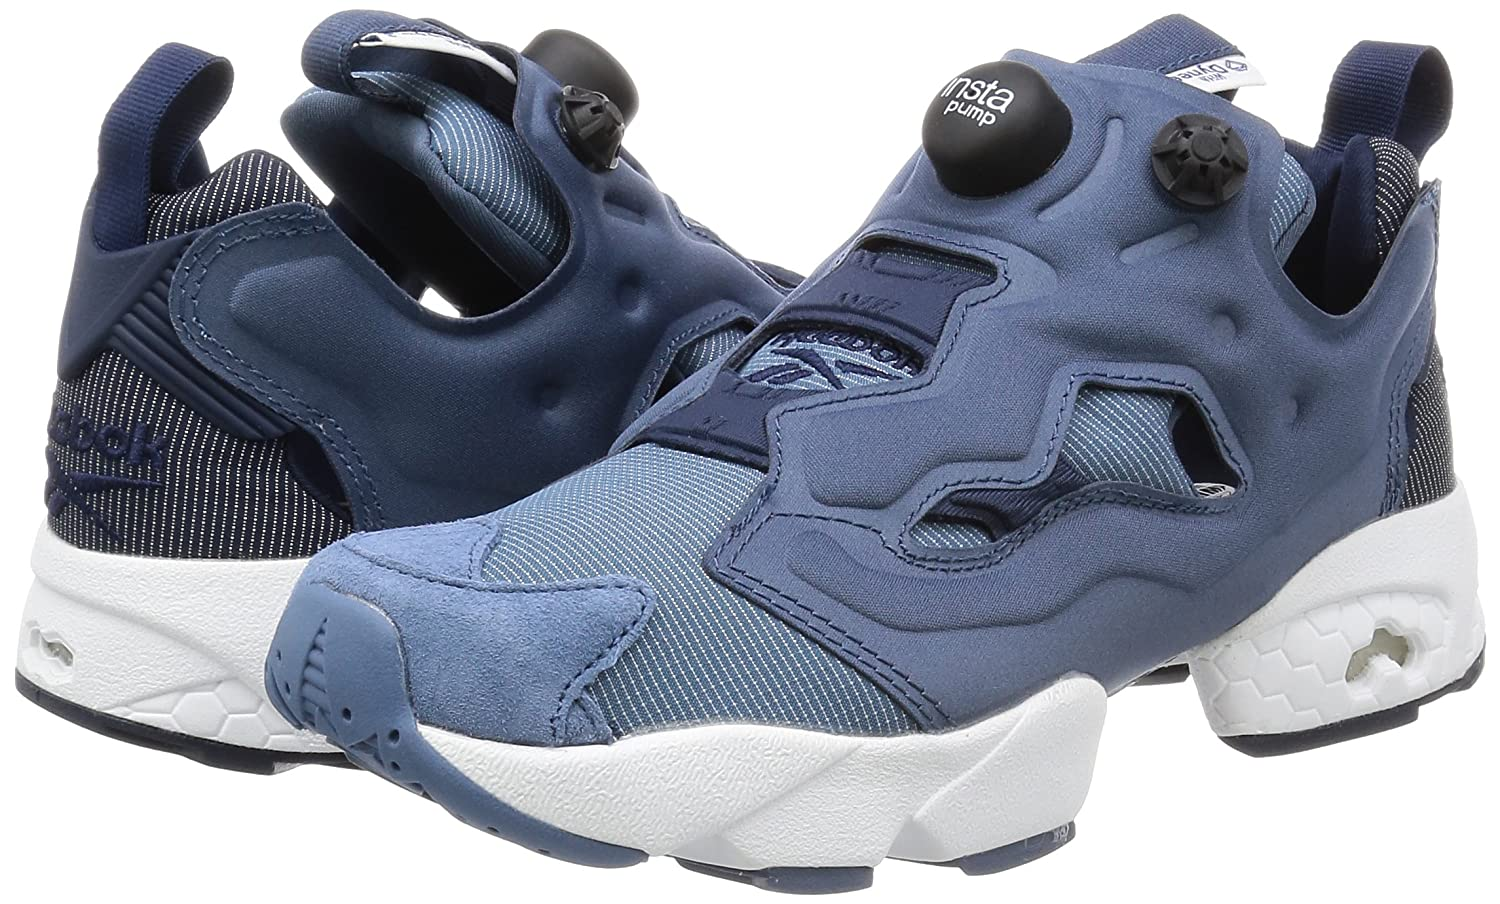 12427d9c46c9 Reebok Men s Classic Instapump Fury Tech Sneaker Blue Ar0624 Royal Slate  Navy Blue Aq0624 5.5 UK  Buy Online at Low Prices in India - Amazon.in